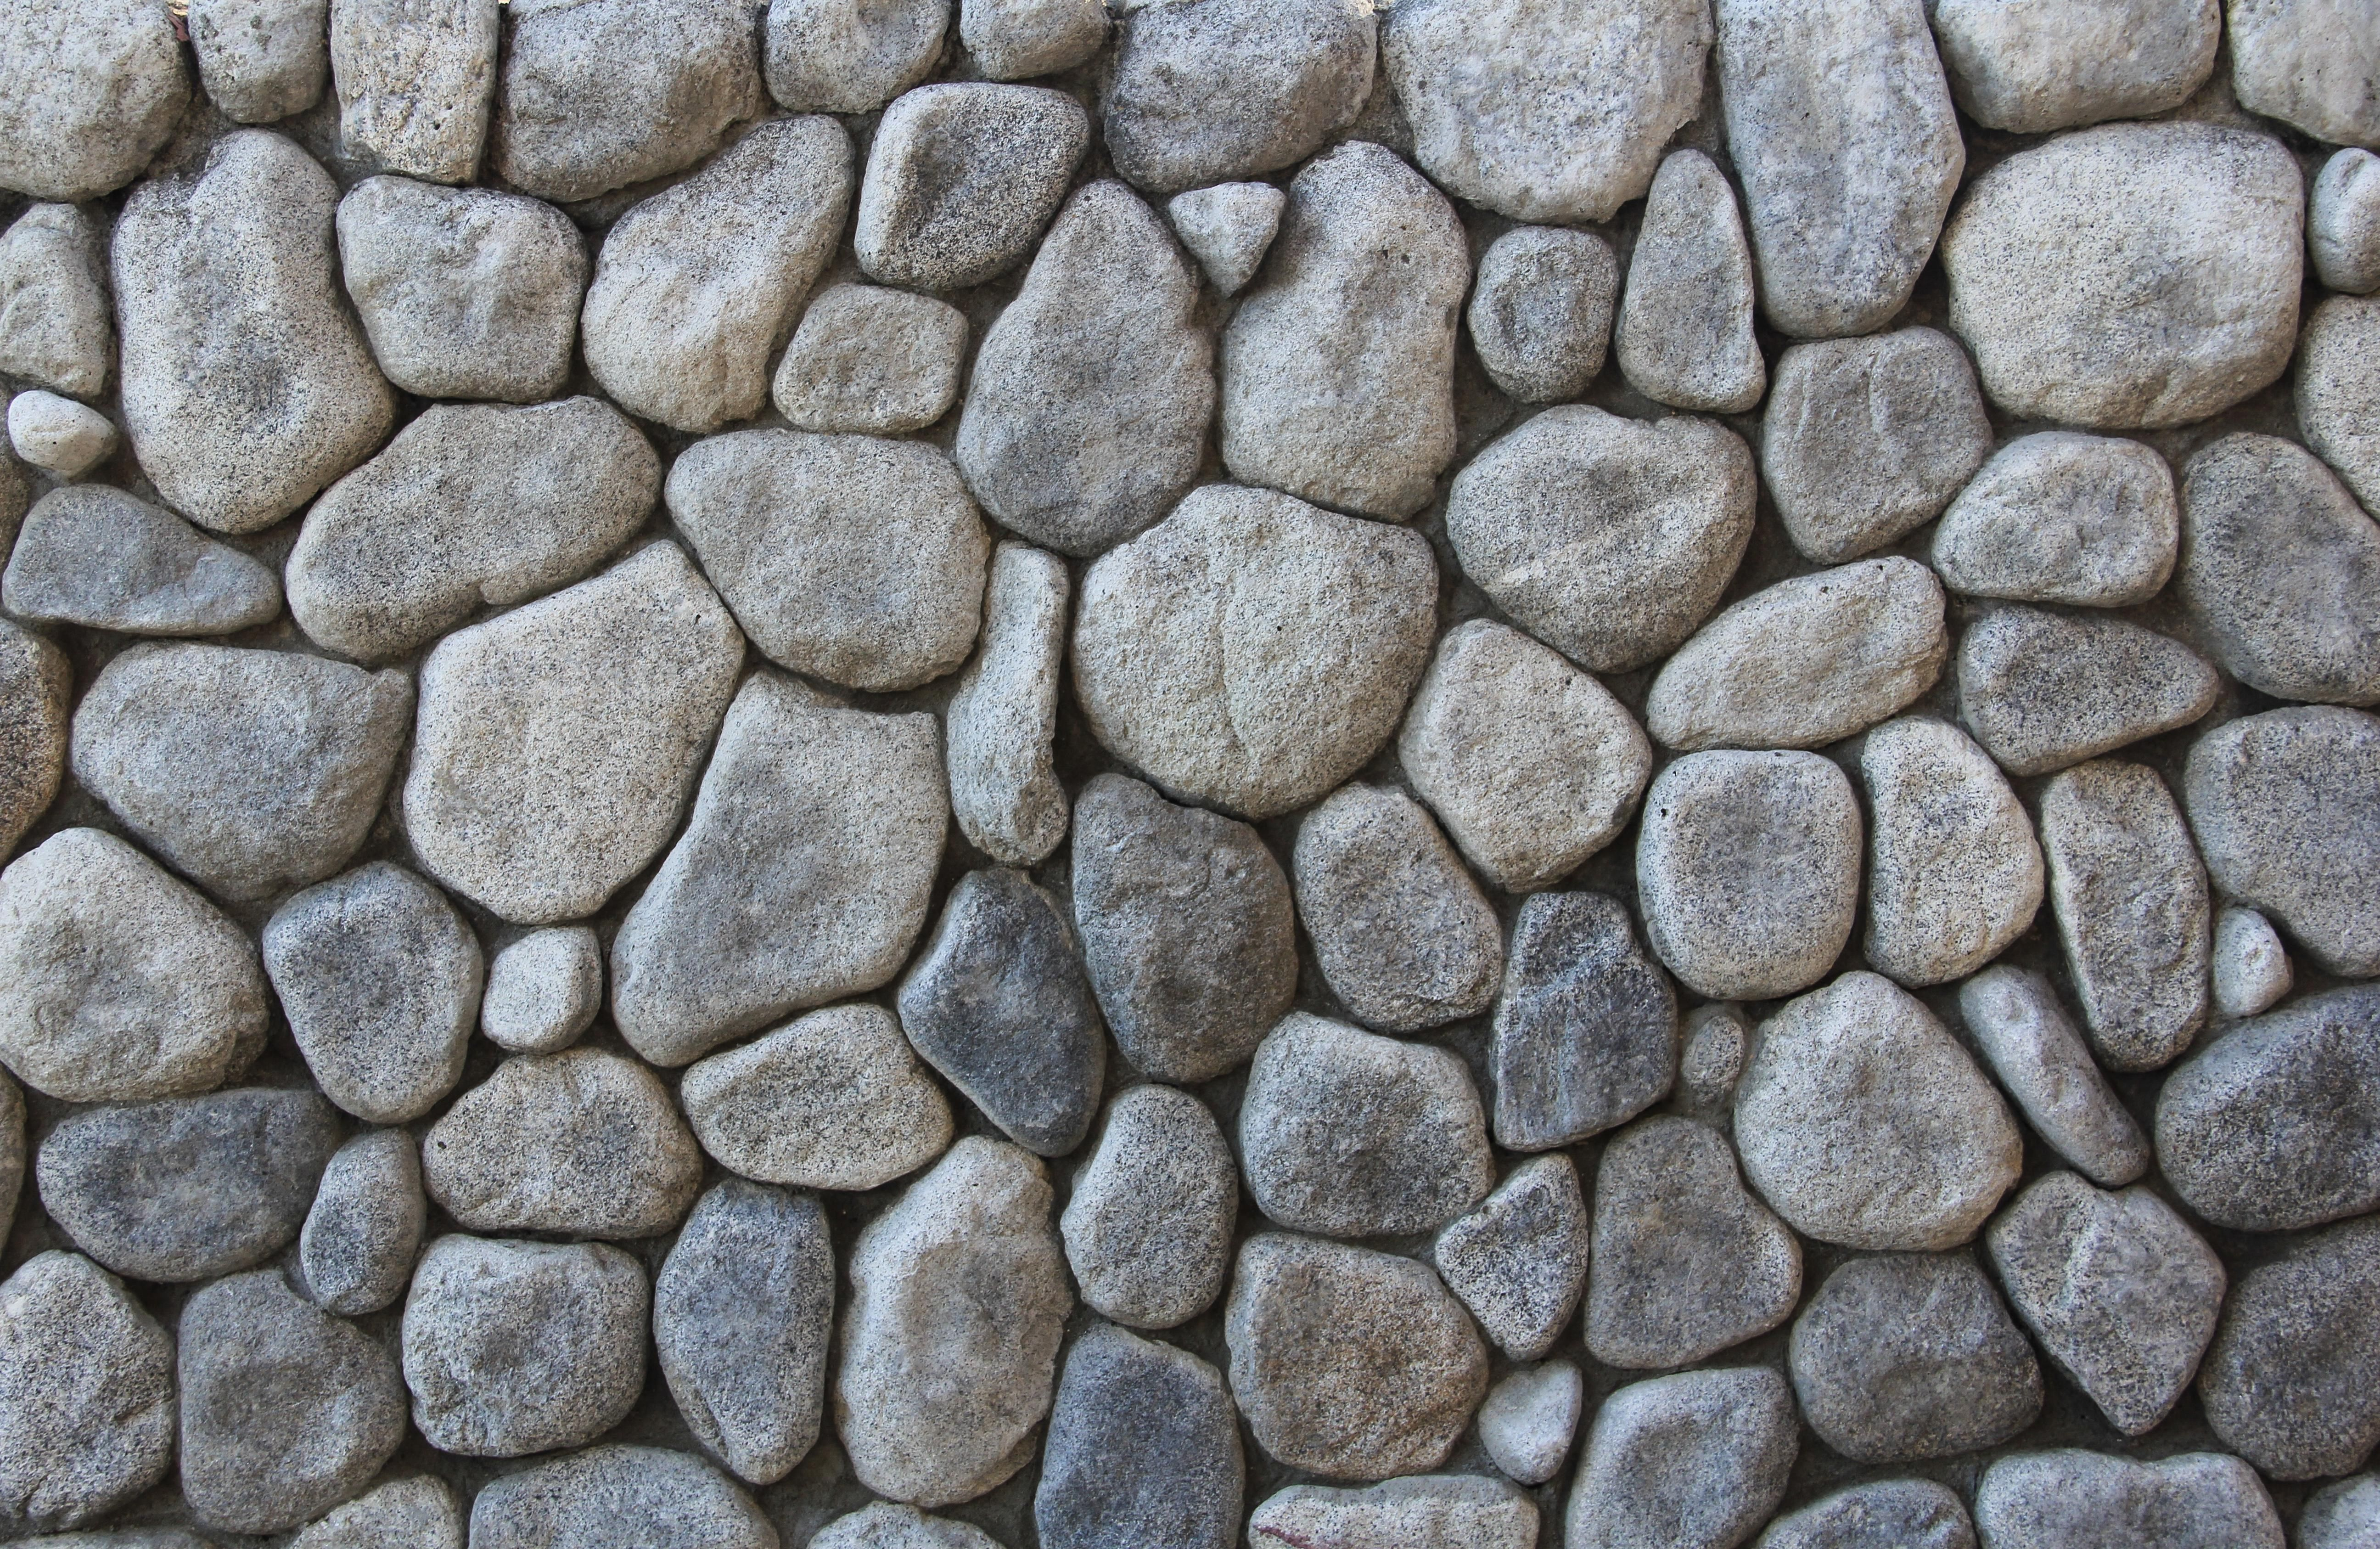 3d Stone Wallpapers Hd Desktop Stone Texture Wall Stone Texture Stone Wallpaper